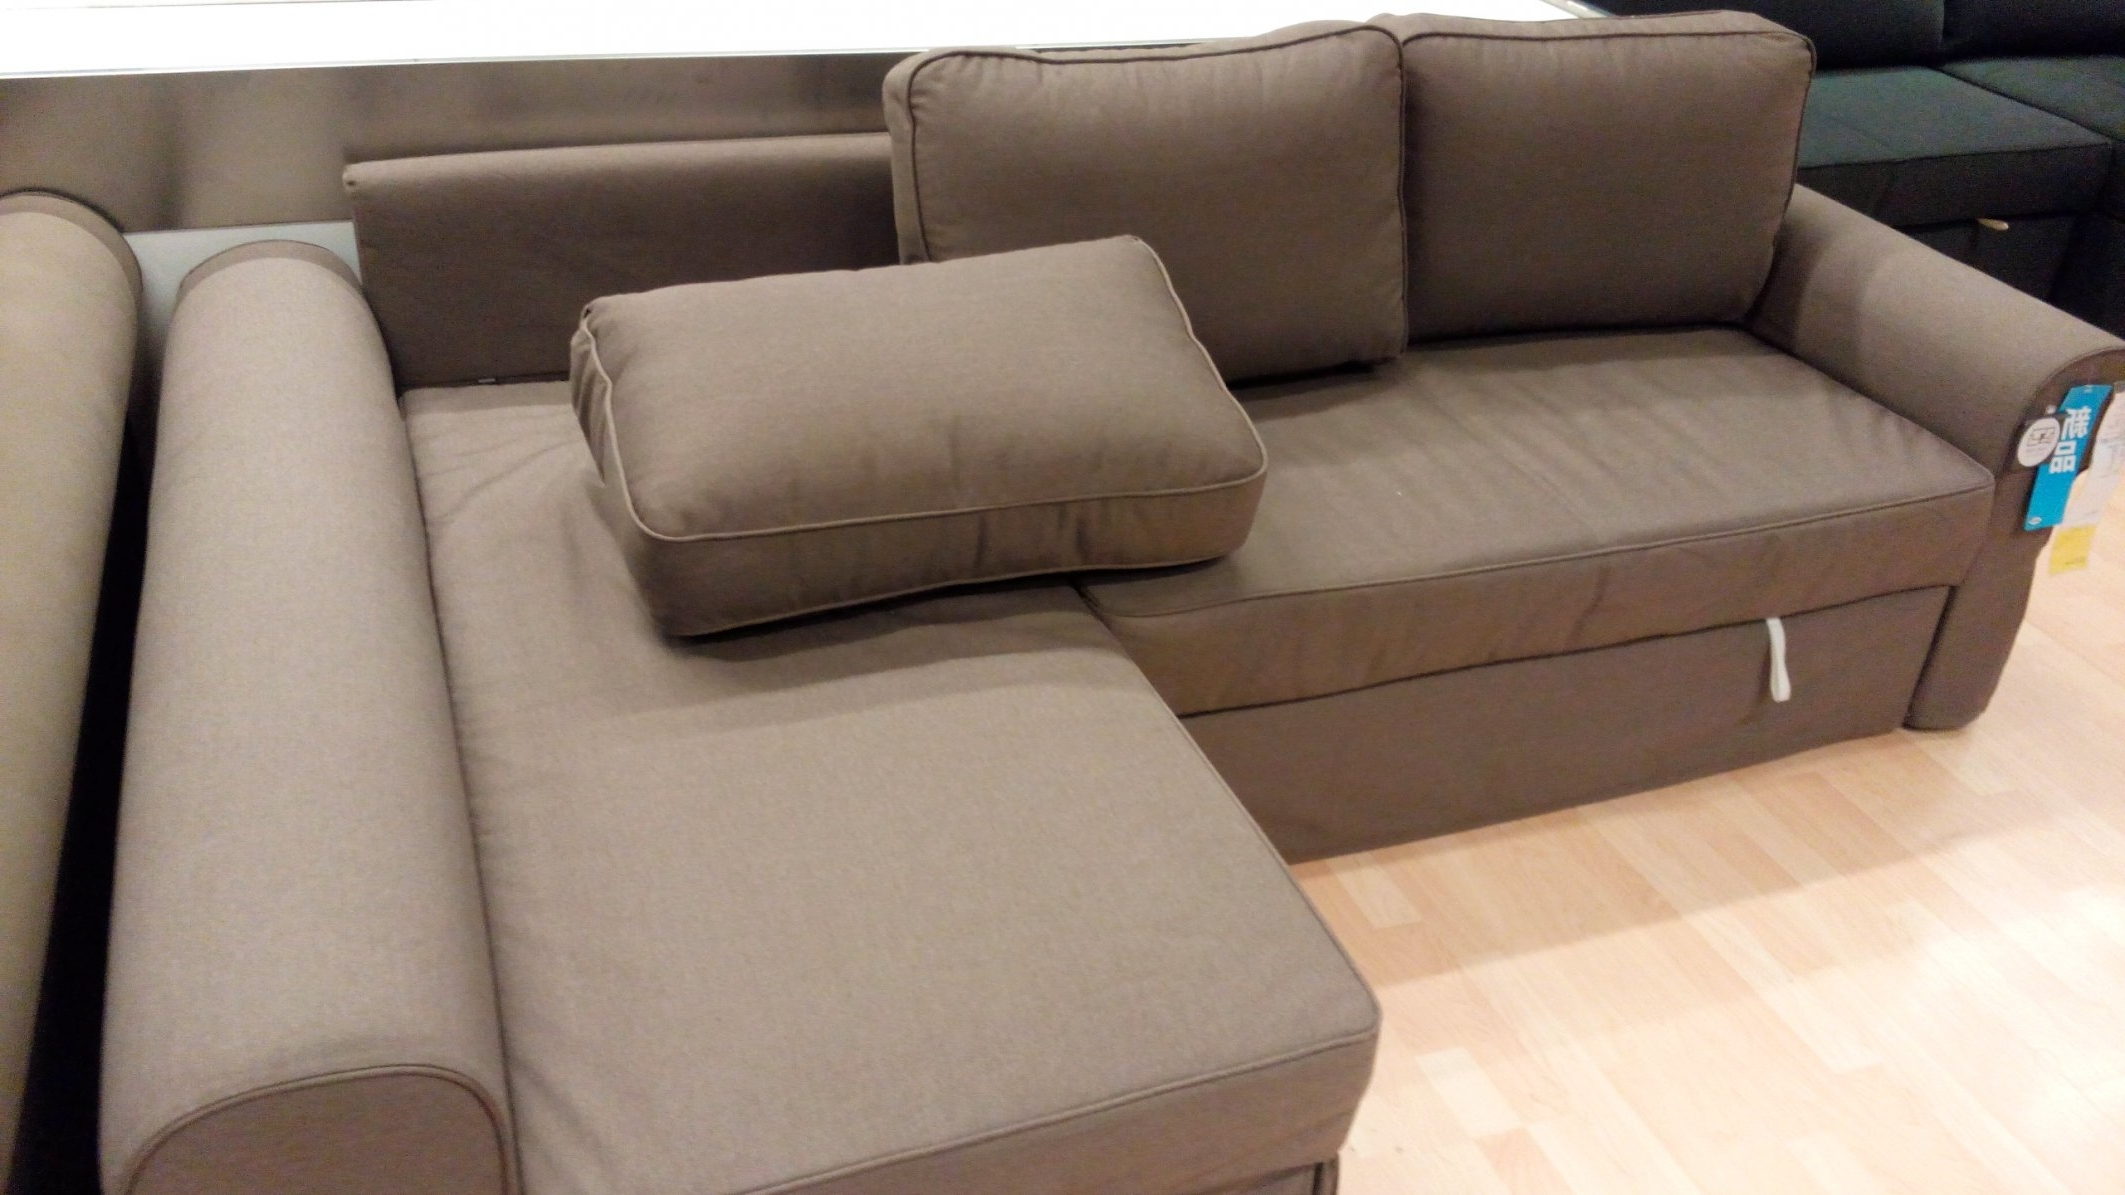 Manstad Sofas Within Widely Used Manstad Sofa Bed Dimensions #2 Ikea Backabro Sofa Bed With Chaise (View 6 of 15)